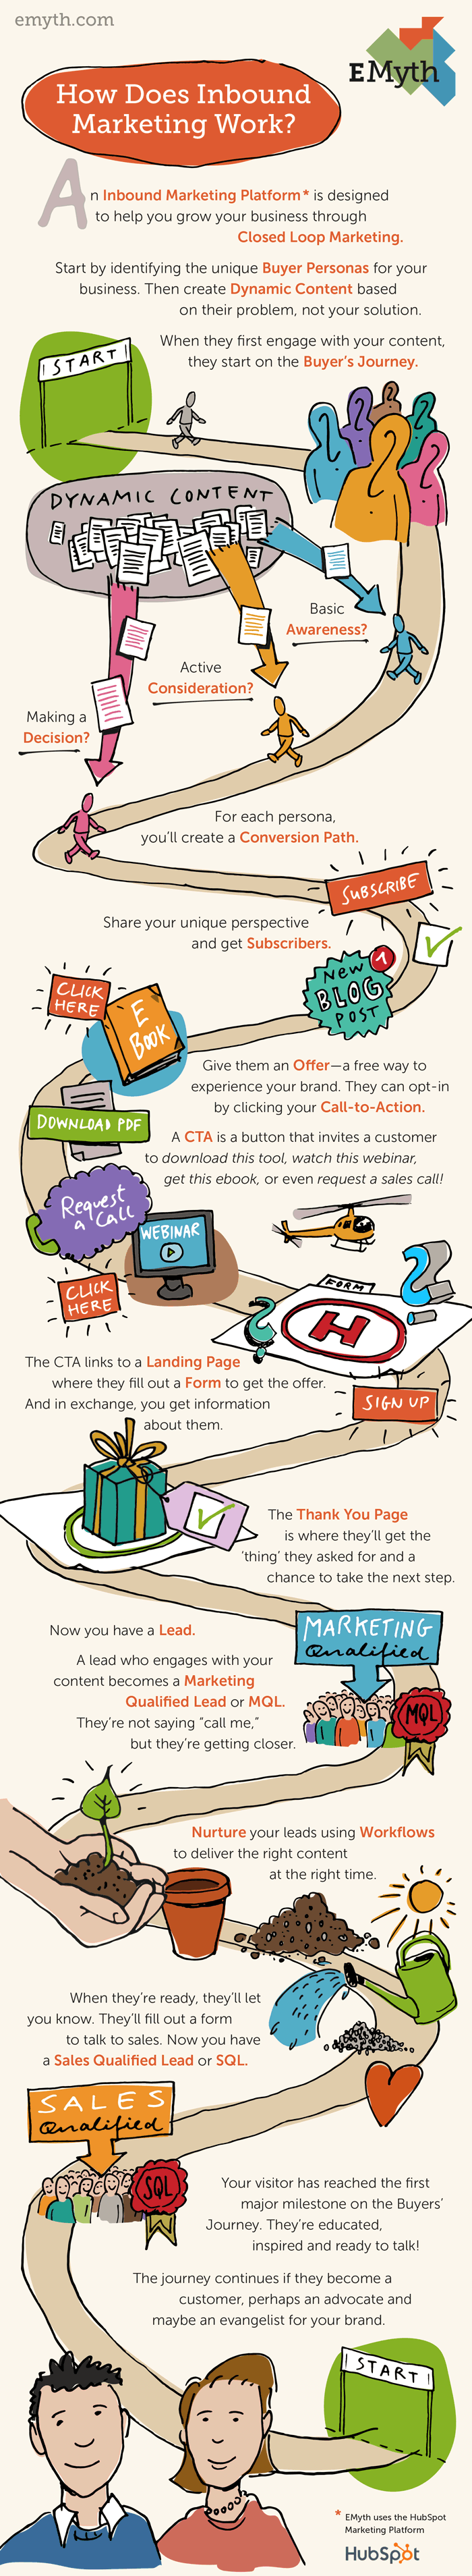 How_Does_Inbound_Marketing_Work_EMyth_Infographic Small